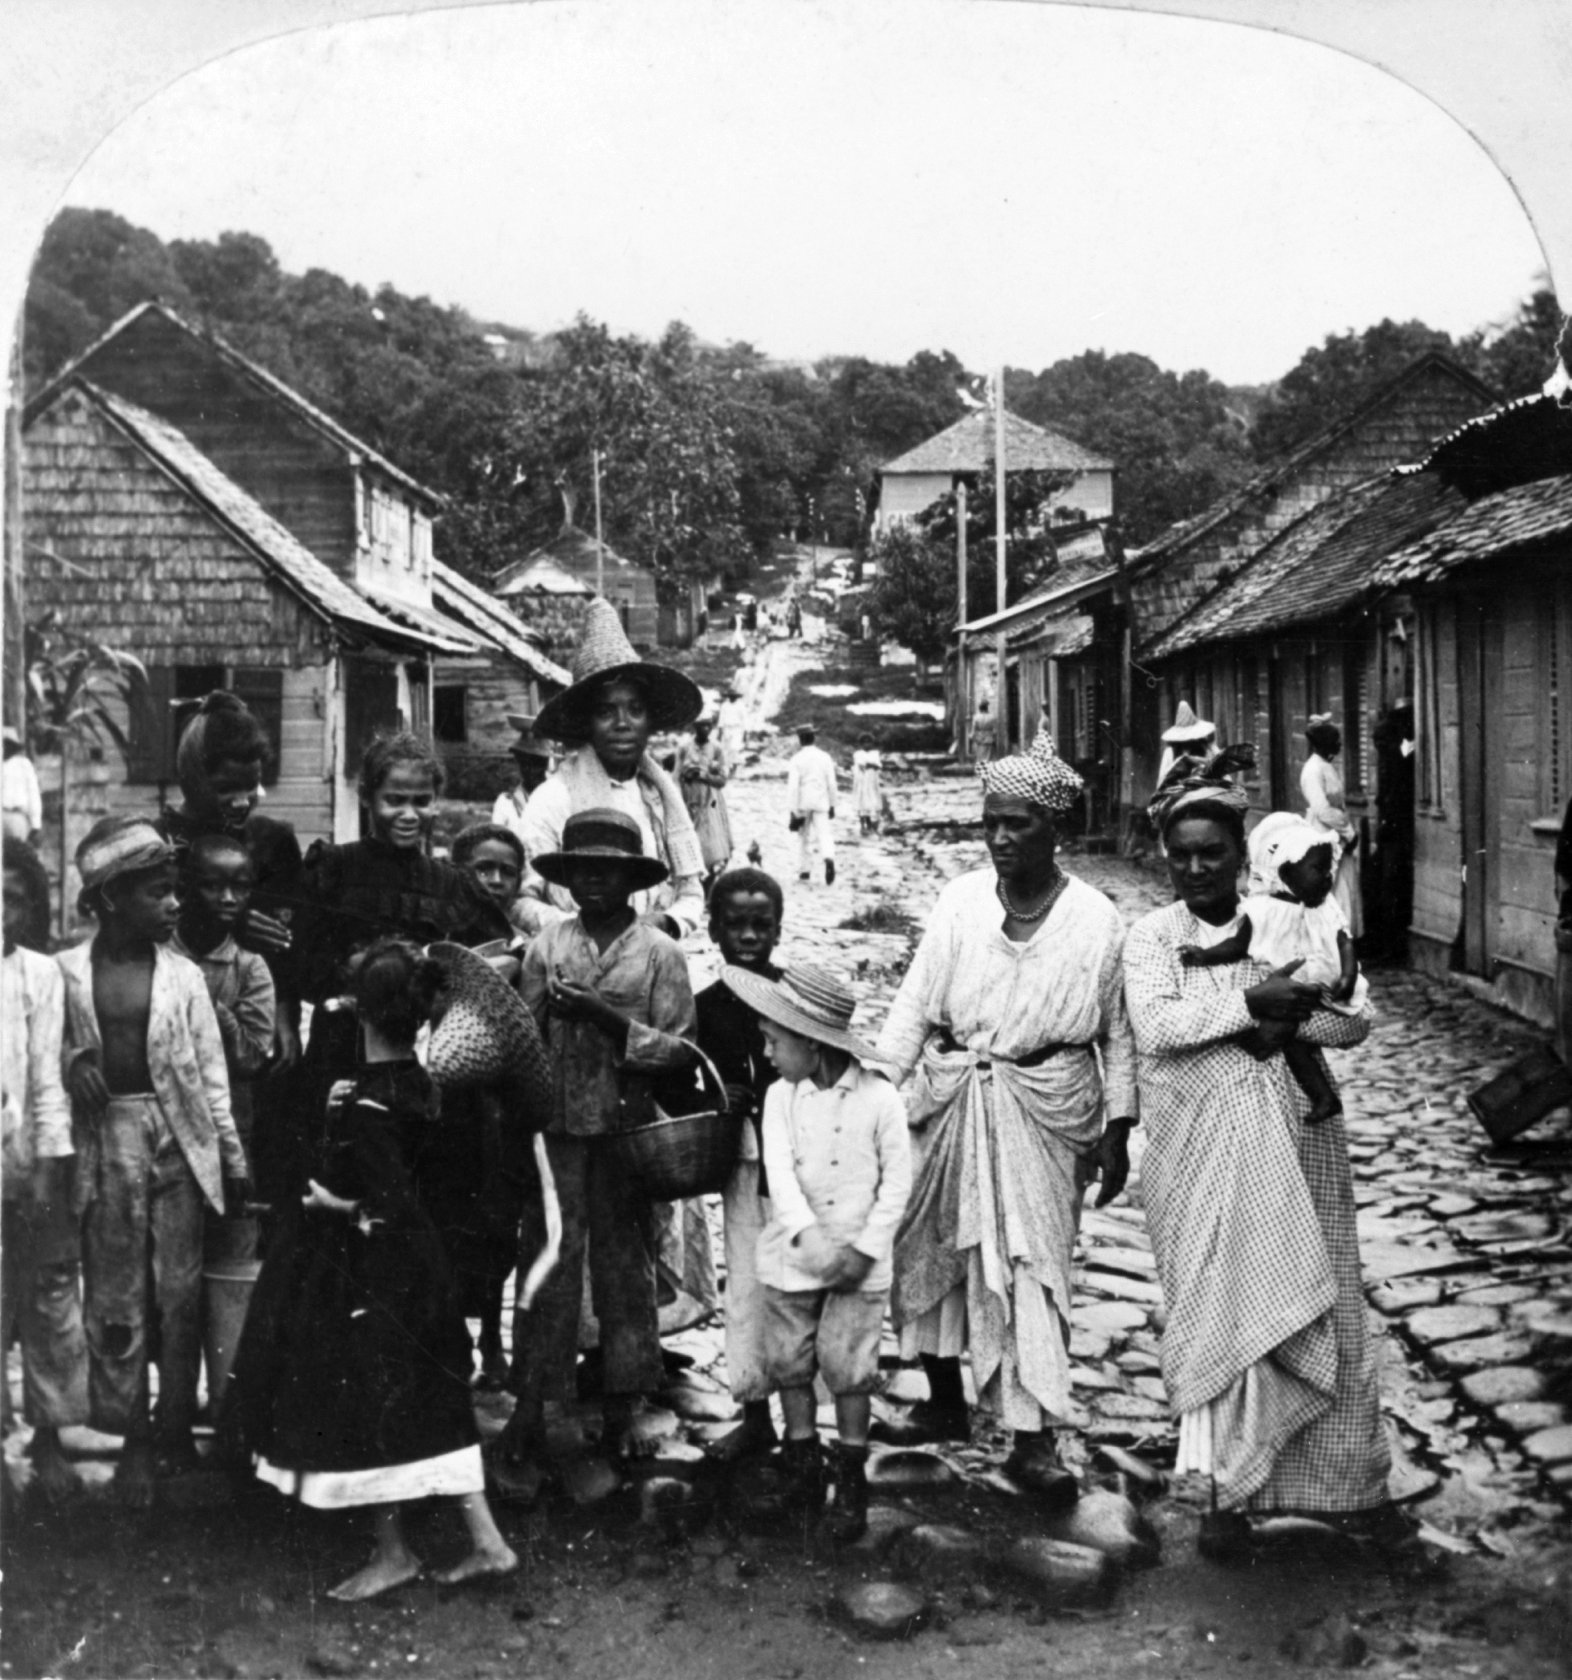 Rosa Luxemburg with refugees from Martinique and the ruins of the town of St. Pierre (May 1902)